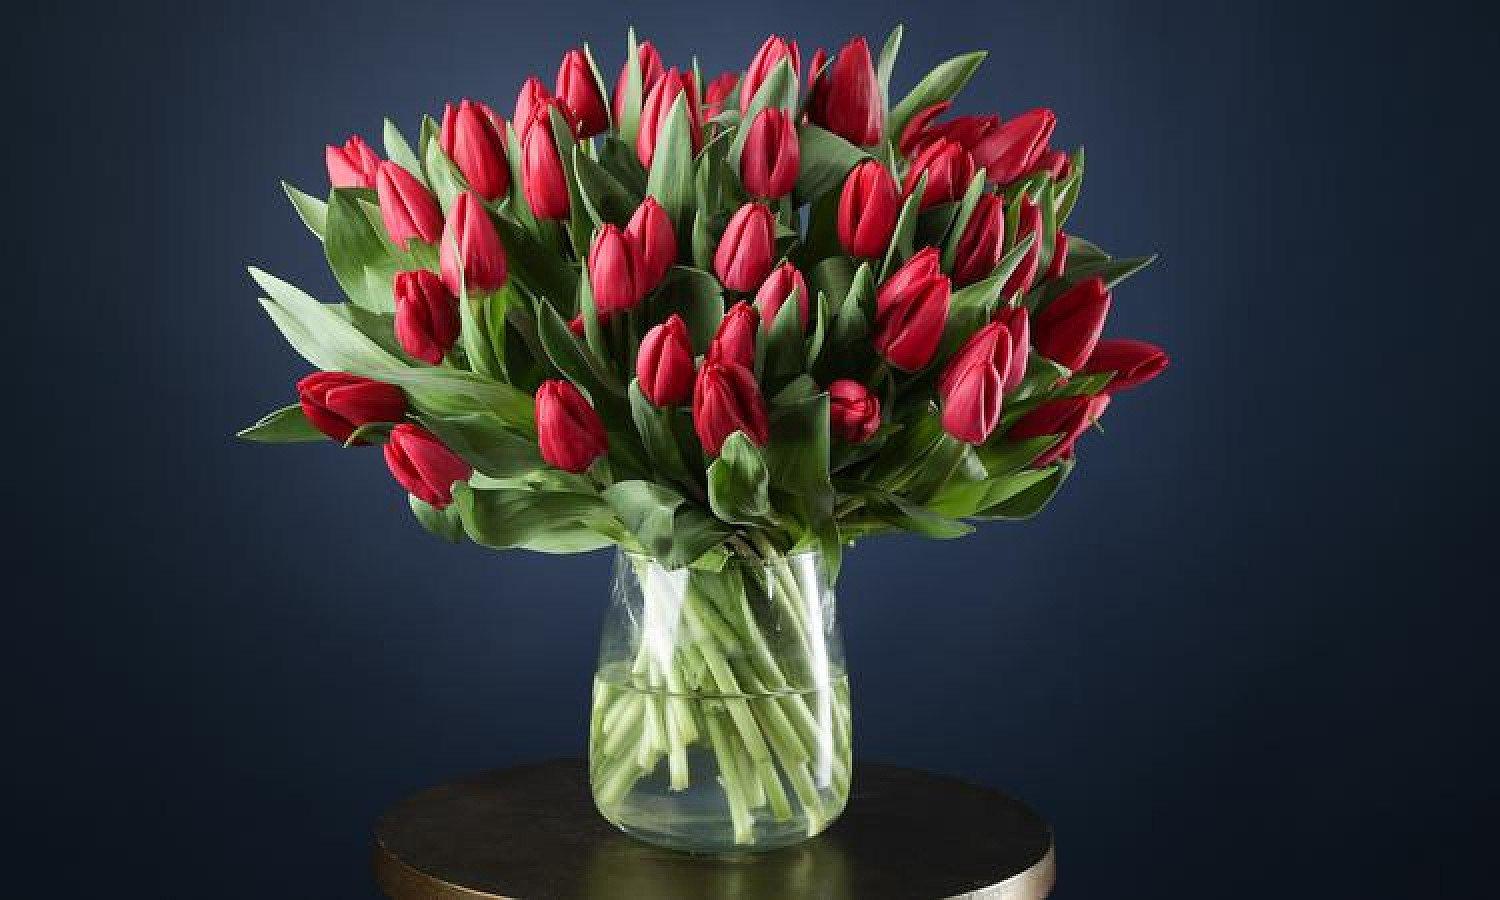 HAND-TIED BOUQUETS BY EXPERT FLORISTS - 50 RED TULIPS £35.00 + Delivery!